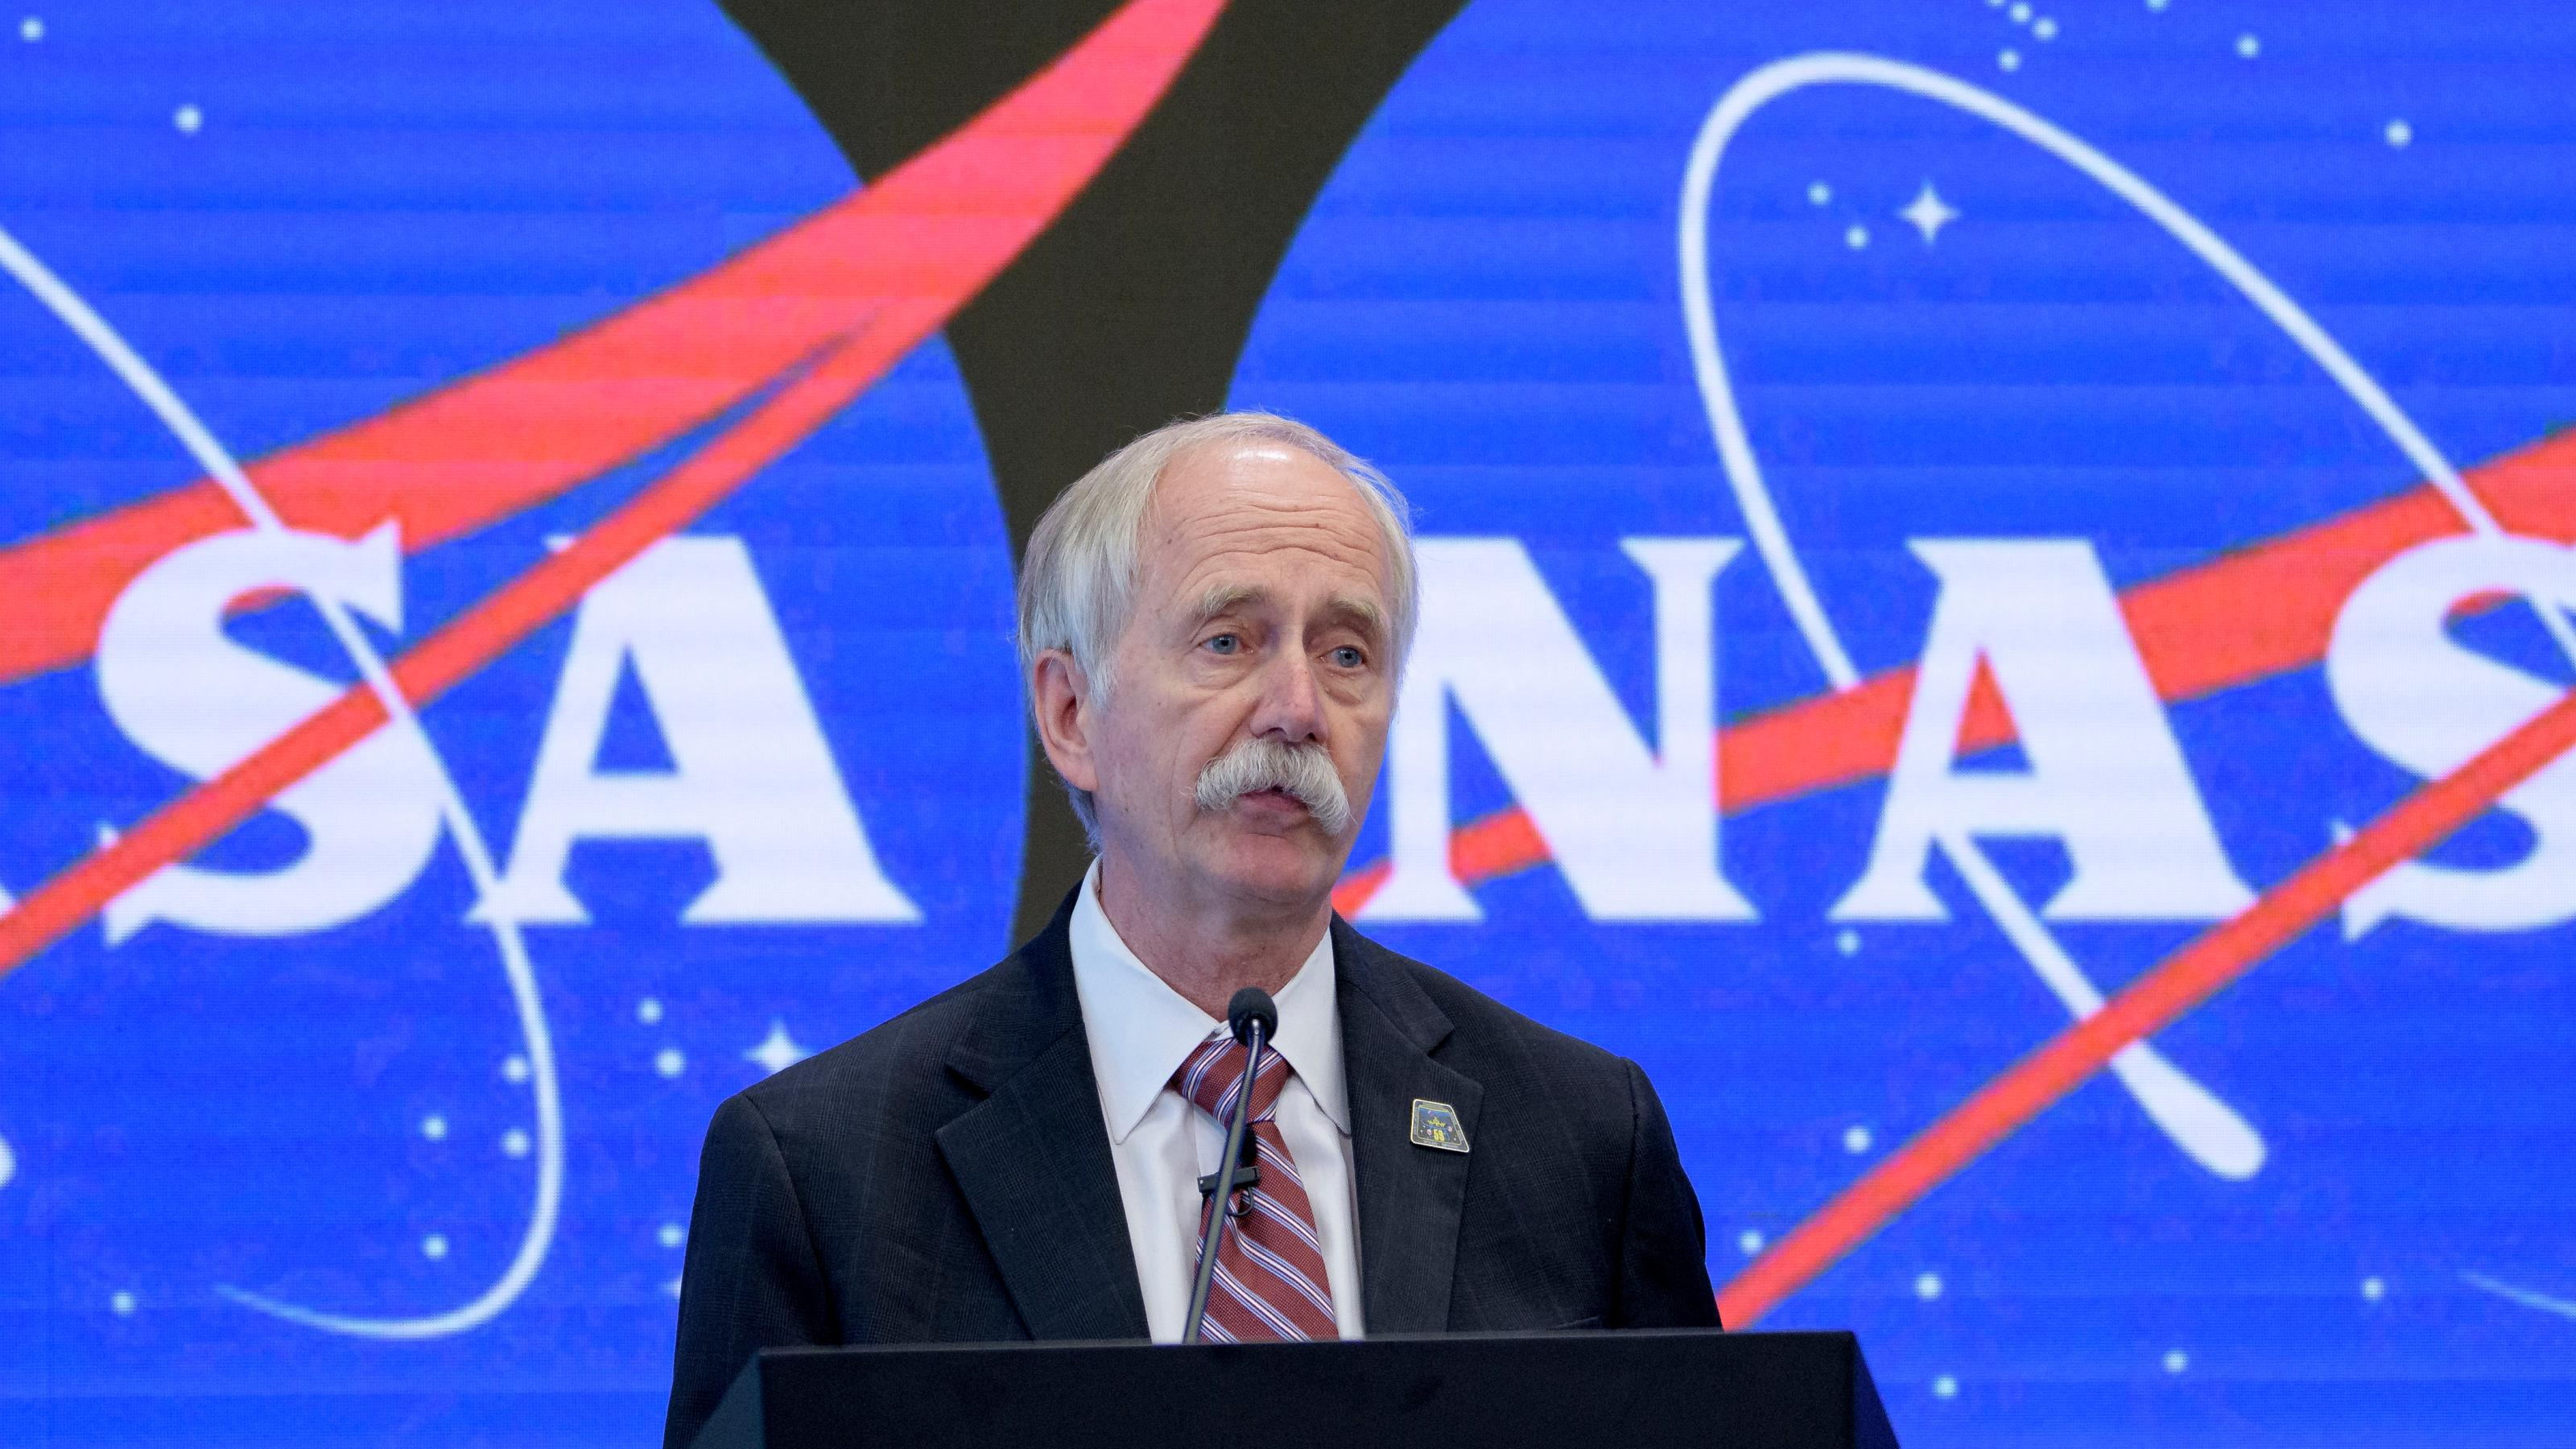 NASA shake-up leaves space program in confusion